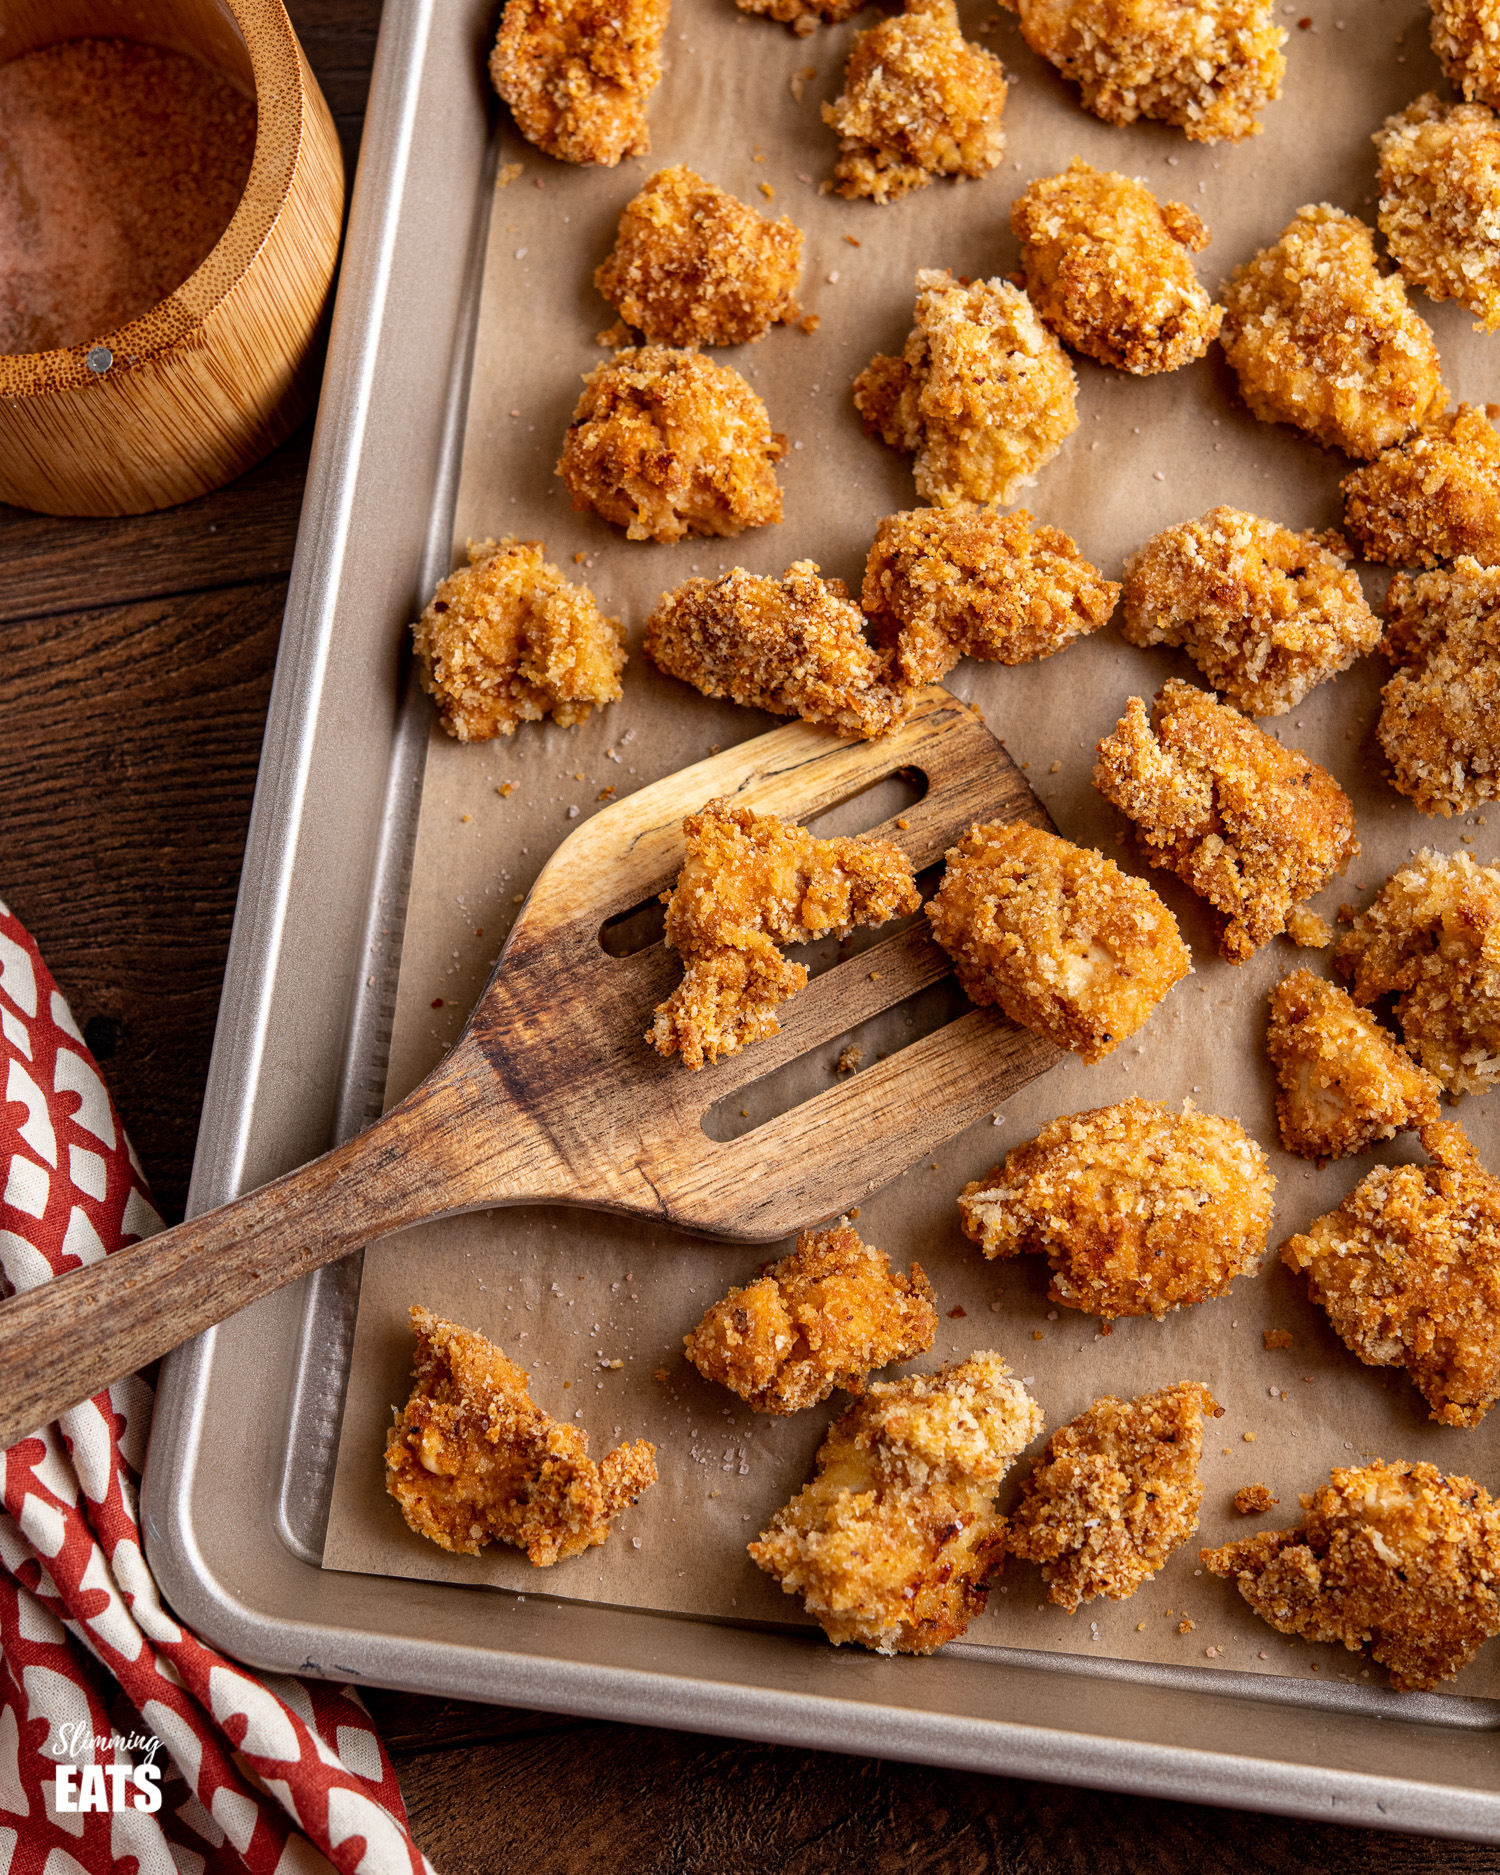 oven baked popcorn chicken bites on a parchment lined baking tray with wooden spatula